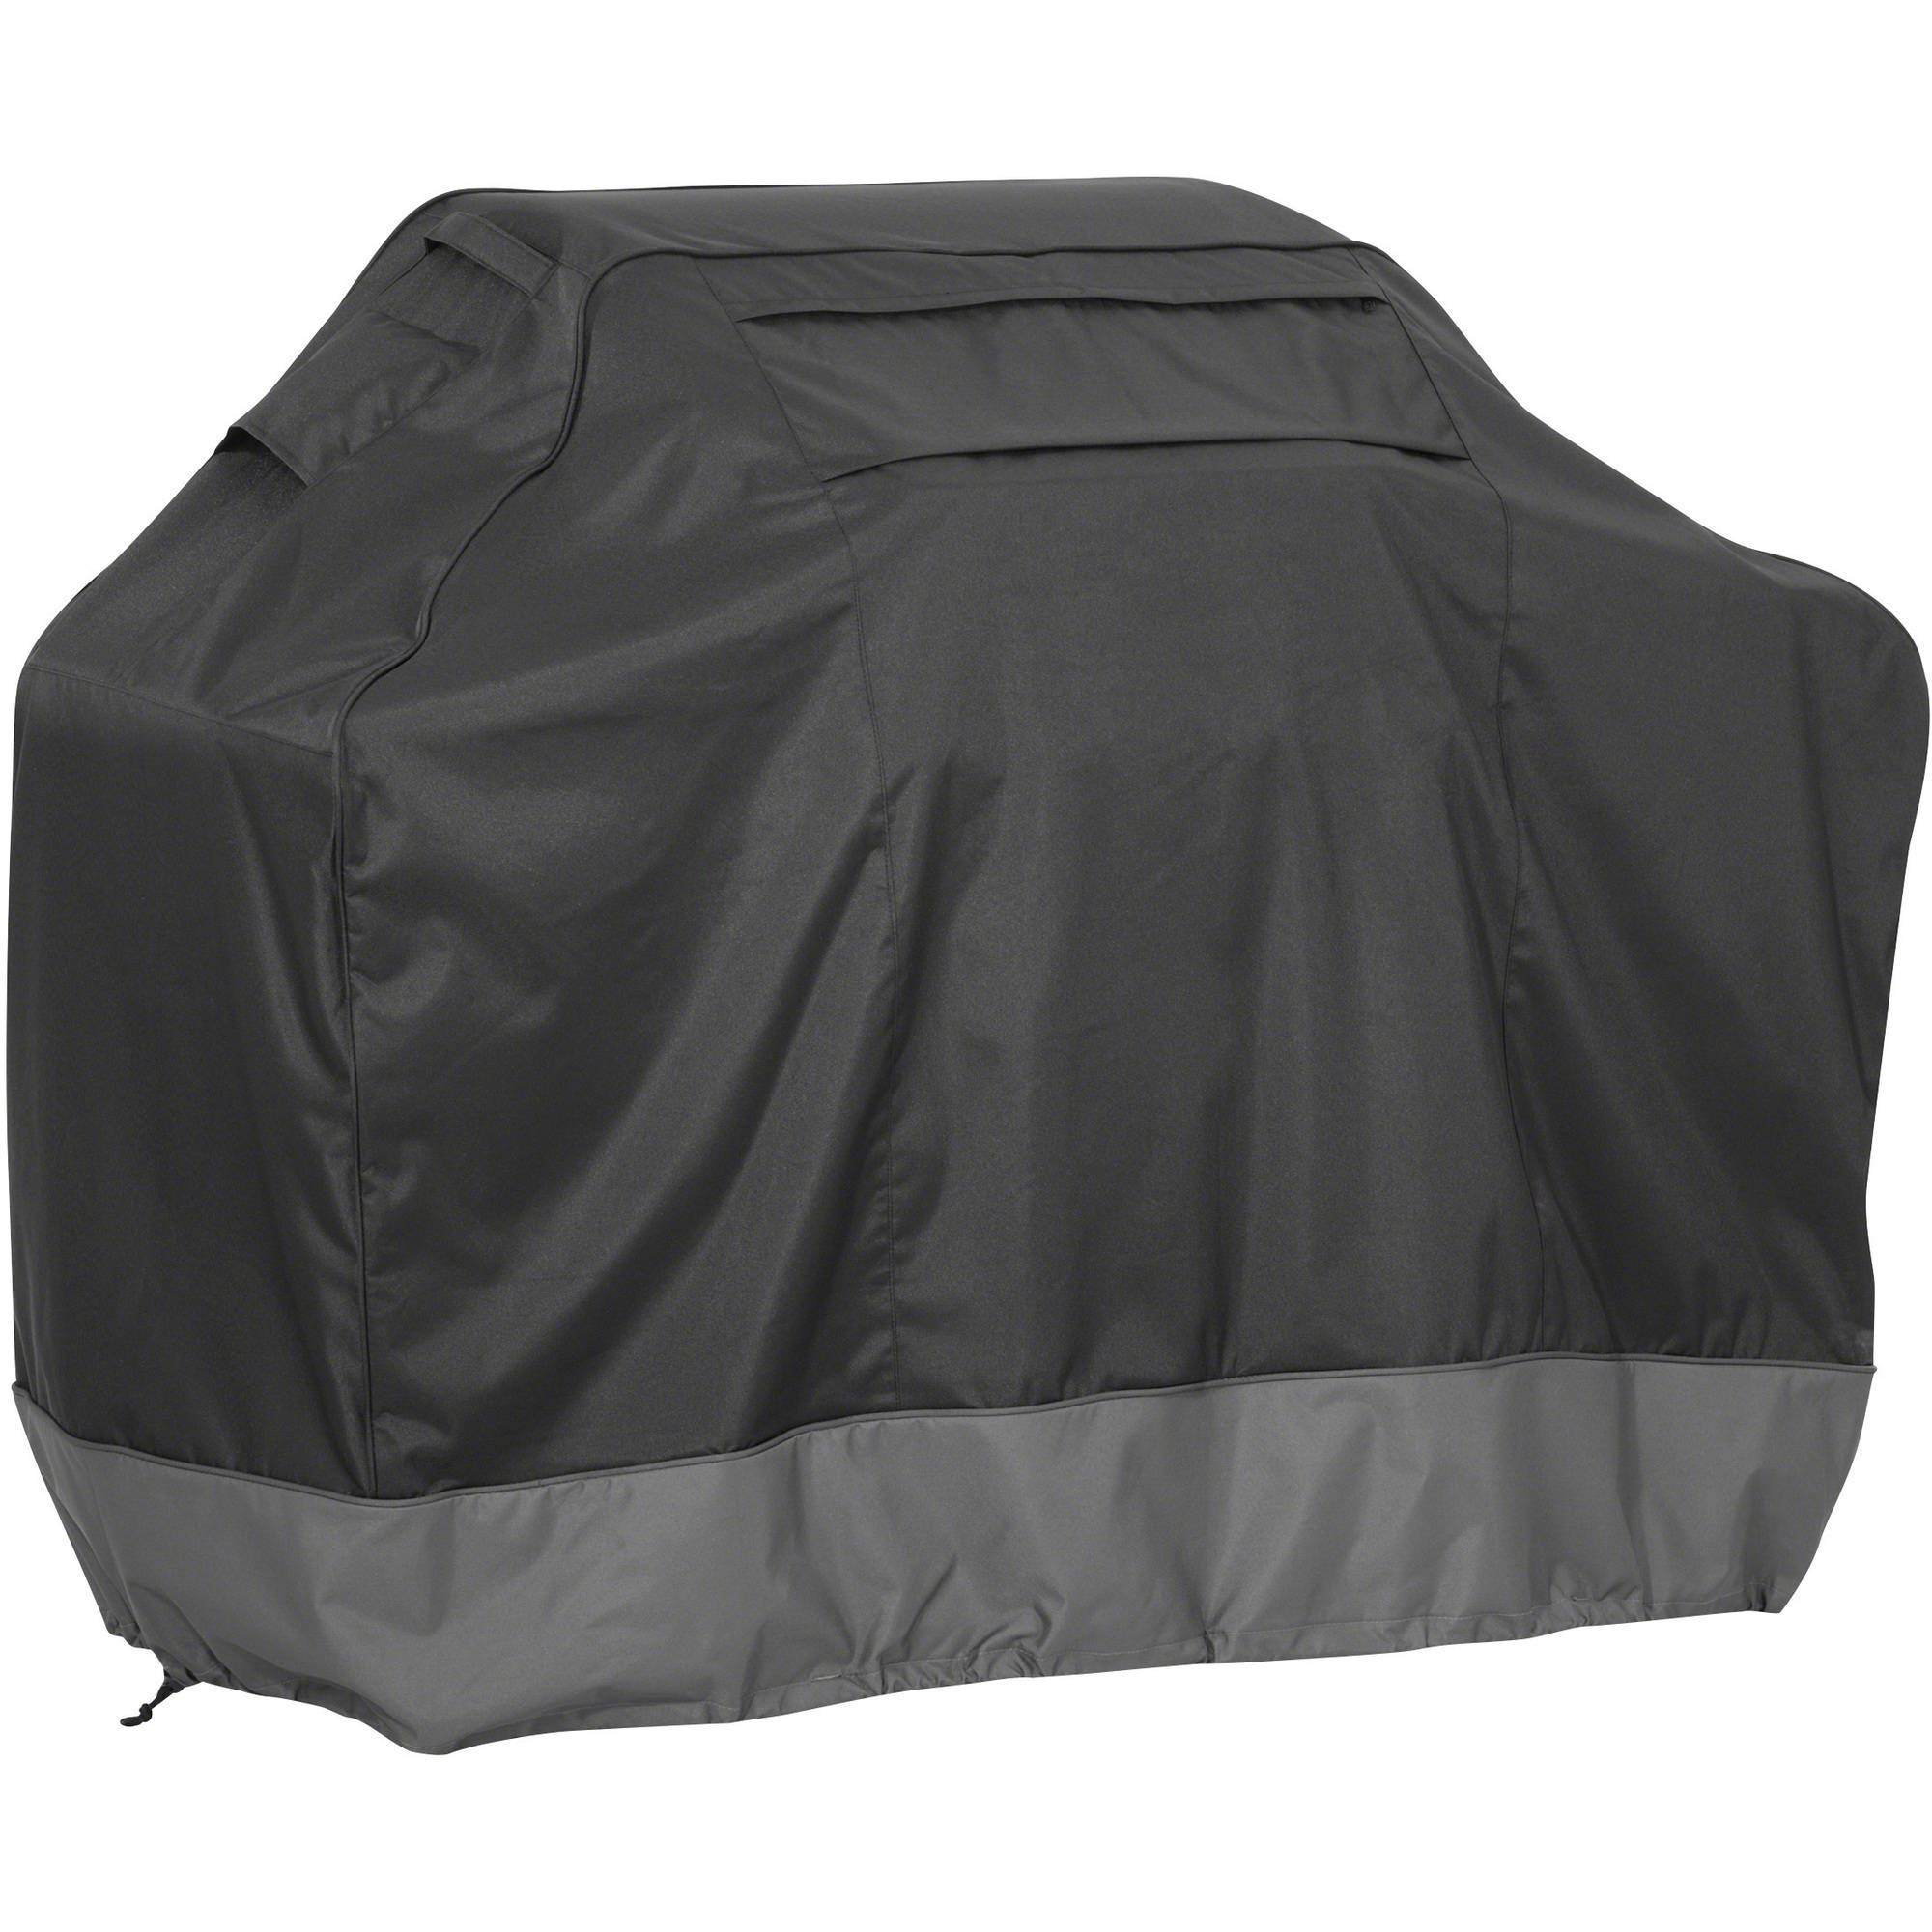 Classic Accessories FadeSafe BBQ Grill Cover, Medium, Raven and Dark Shadow